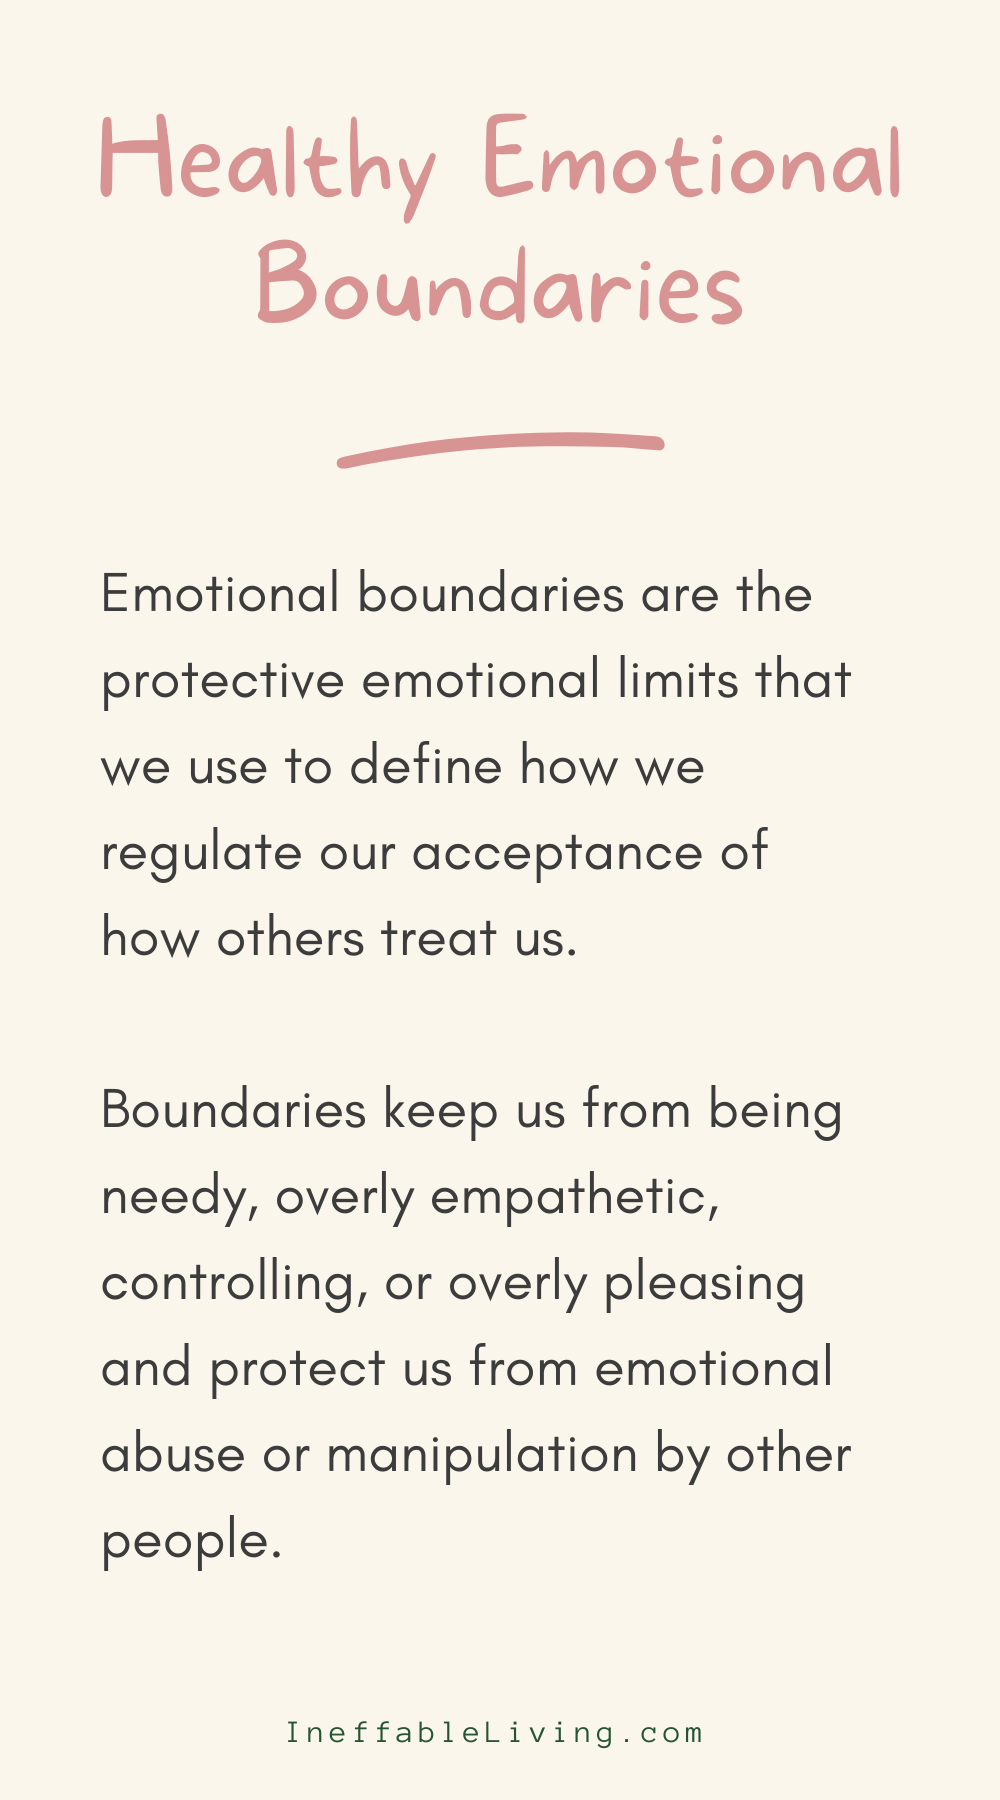 How to Firmly Establish and Enforce Healthy Emotional Boundaries?